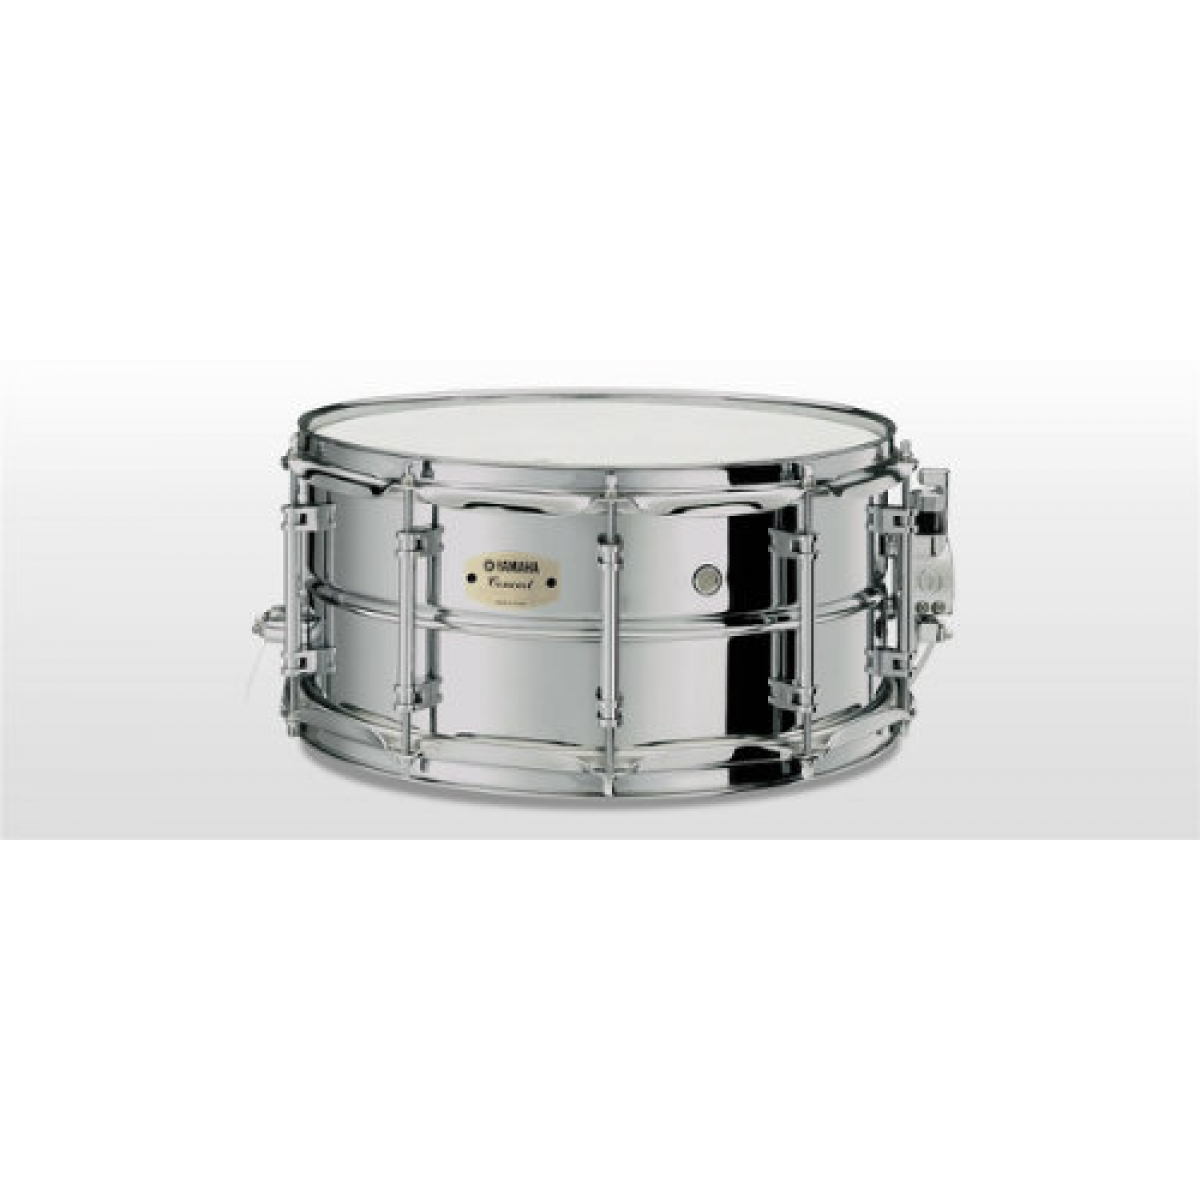 yamaha css1465a orchestral concert snare drum at promenade music. Black Bedroom Furniture Sets. Home Design Ideas